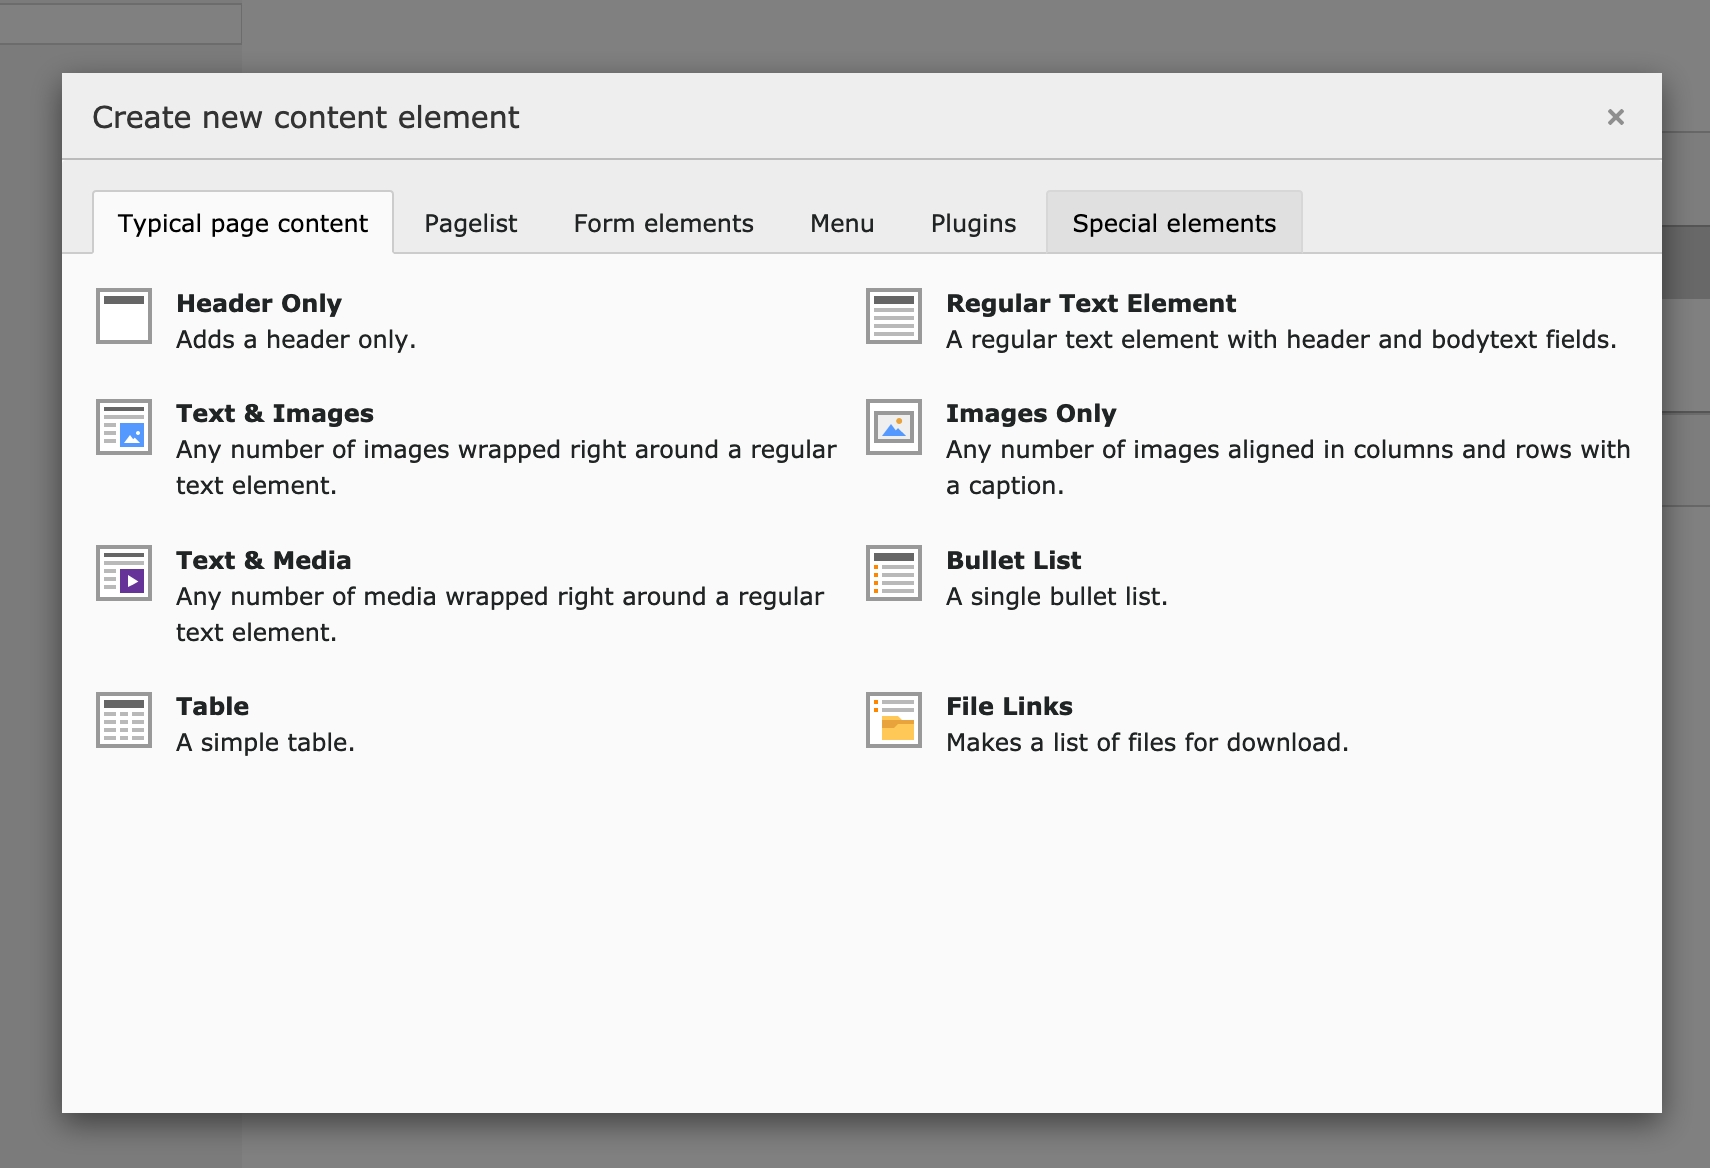 TYPO3 new content element